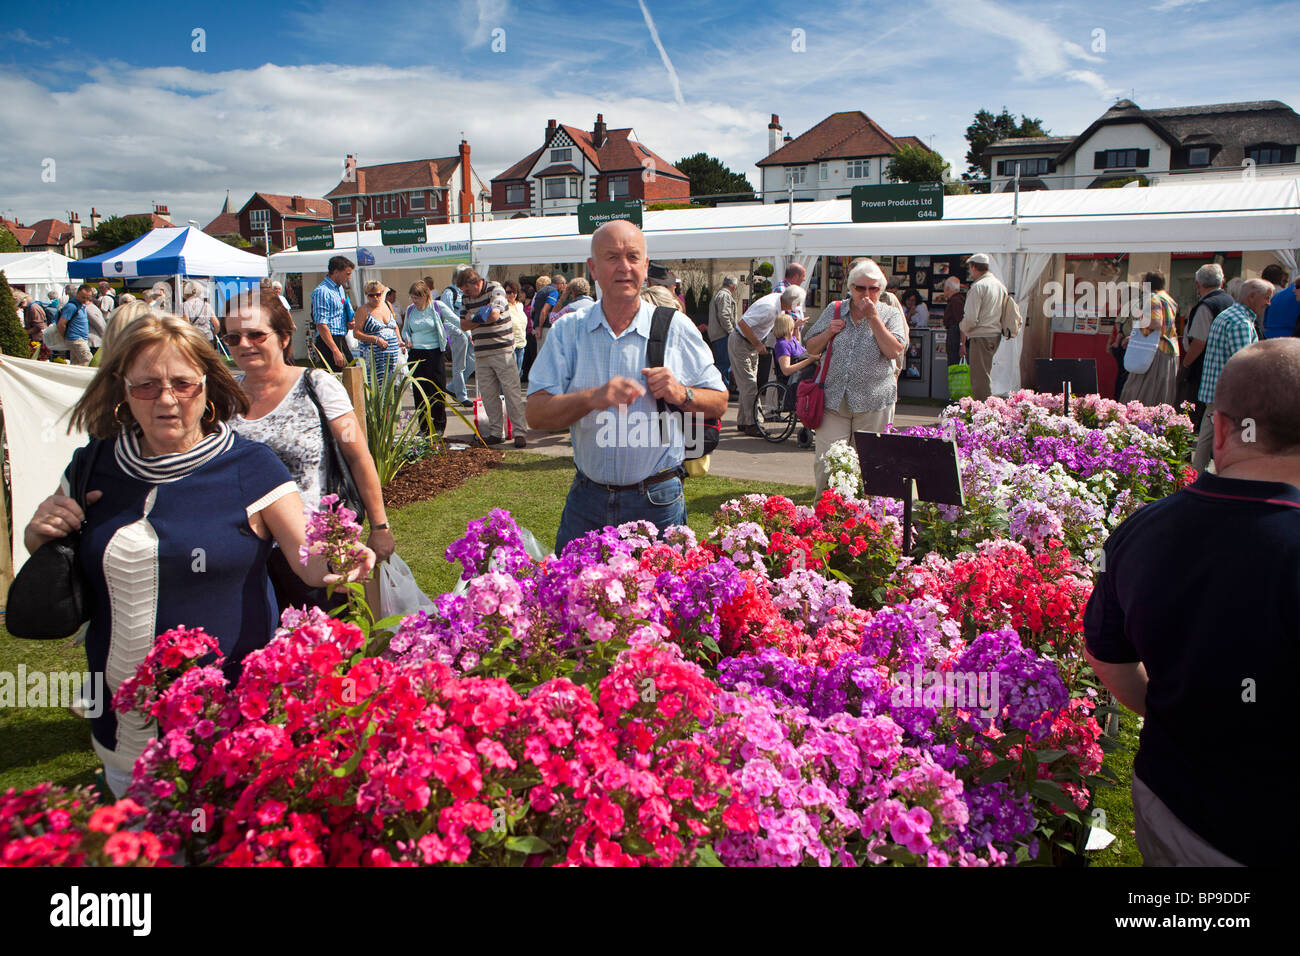 UK, England, Merseyside, Southport Flower Show, visitors at nursery stall selling colourful stocks in flower Stock Photo